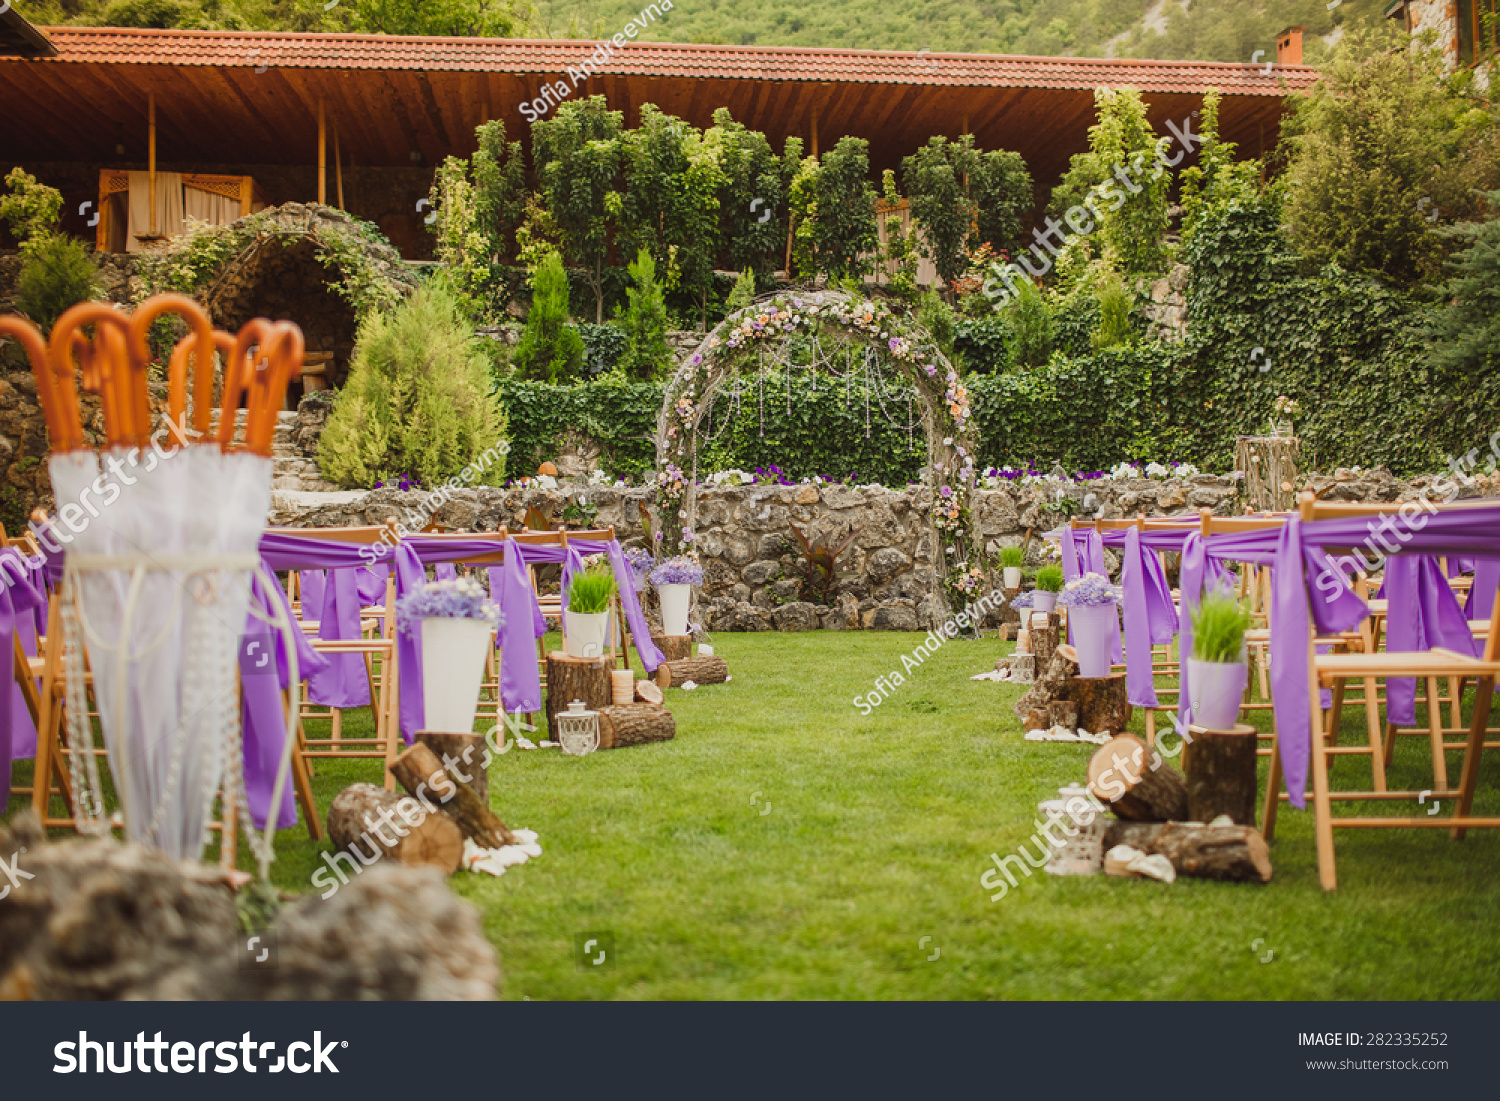 Wedding decorations marriage decor rustic style stock photo royalty wedding decorations marriage decor rustic style stock photo royalty free 282335252 shutterstock junglespirit Image collections